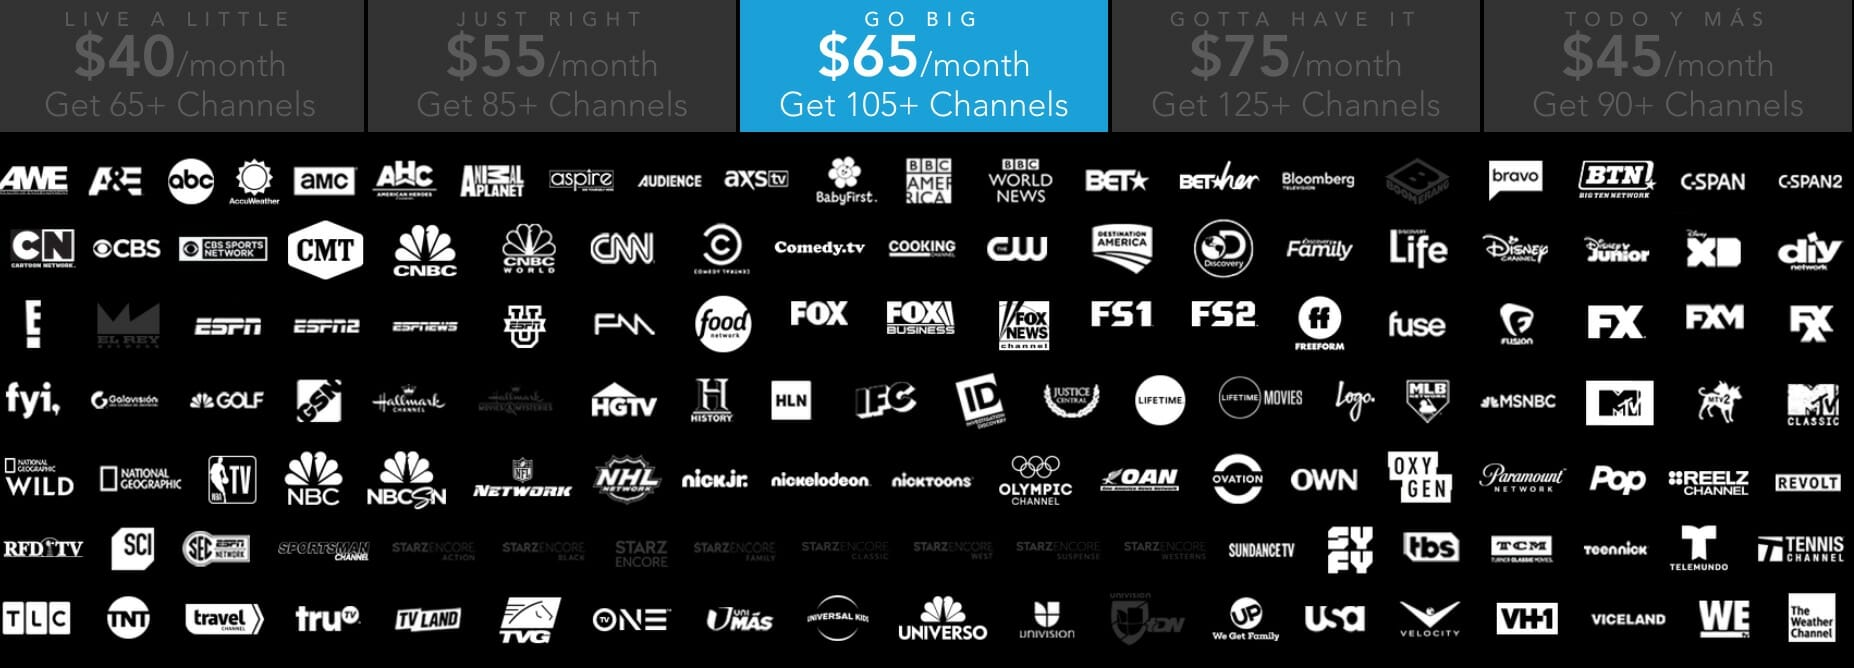 graphic relating to Direct Tv Channels Printable List referred to as DirecTV Presently Channels: The Comprehensive DirecTV Already Channel Lineup